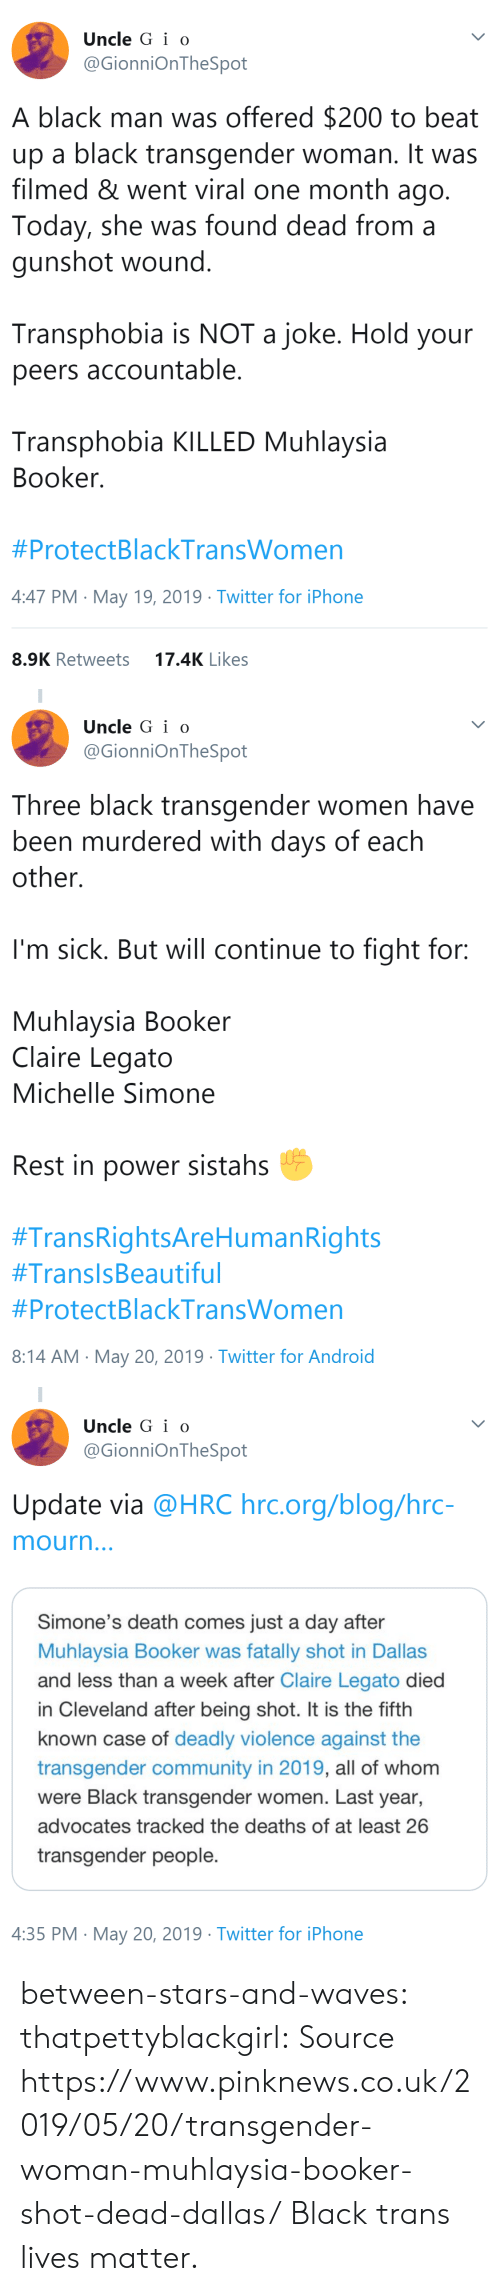 Claire: Uncle G i o  @GionniOnTheSpot  A black man was offered $200 to beat  up a black transgender woman. It was  filmed & went viral one month ago  Today, she was found dead from a  gunshot wound  Transphobia is NOT a joke. Hold your  peers accountable  Transphobia KILLED Muhlaysia  Booker  #ProtectBlackTransWomen  4:47 PM May 19, 2019 Twitter for iPhone  17.4K Likes  8.9K Retweets   Uncle G i o  @GionniOnTheSpot  Three black transgender women have  been murdered with days of each  other.  I'm sick. But will continue to fight for:  Muhlaysia Booker  Claire Legato  Michelle Simone  Rest in power sistahs  #TransRightsAreHumanRights  #TransisBeautiful  #ProtectBlackTransWomen  8:14 AM May 20, 2019 Twitter for Android   Uncle G i o  @GionniOnTheSpot  Update via @HRC hrc.org/blog/hrc-  mourn  Simone's death comes just a day after  Muhlaysia Booker was fatally shot in Dallas  and less than a week after Claire Legato died  in Cleveland after being shot. It is the fifth  known case of deadly violence against the  transgender community in 2019, all of whom  were Black transgender women. Last year,  advocates tracked the deaths of at least 26  transgender people.  4:35 PM May 20, 2019 Twitter for iPhone between-stars-and-waves: thatpettyblackgirl:   Source   https://www.pinknews.co.uk/2019/05/20/transgender-woman-muhlaysia-booker-shot-dead-dallas/   Black trans lives matter.